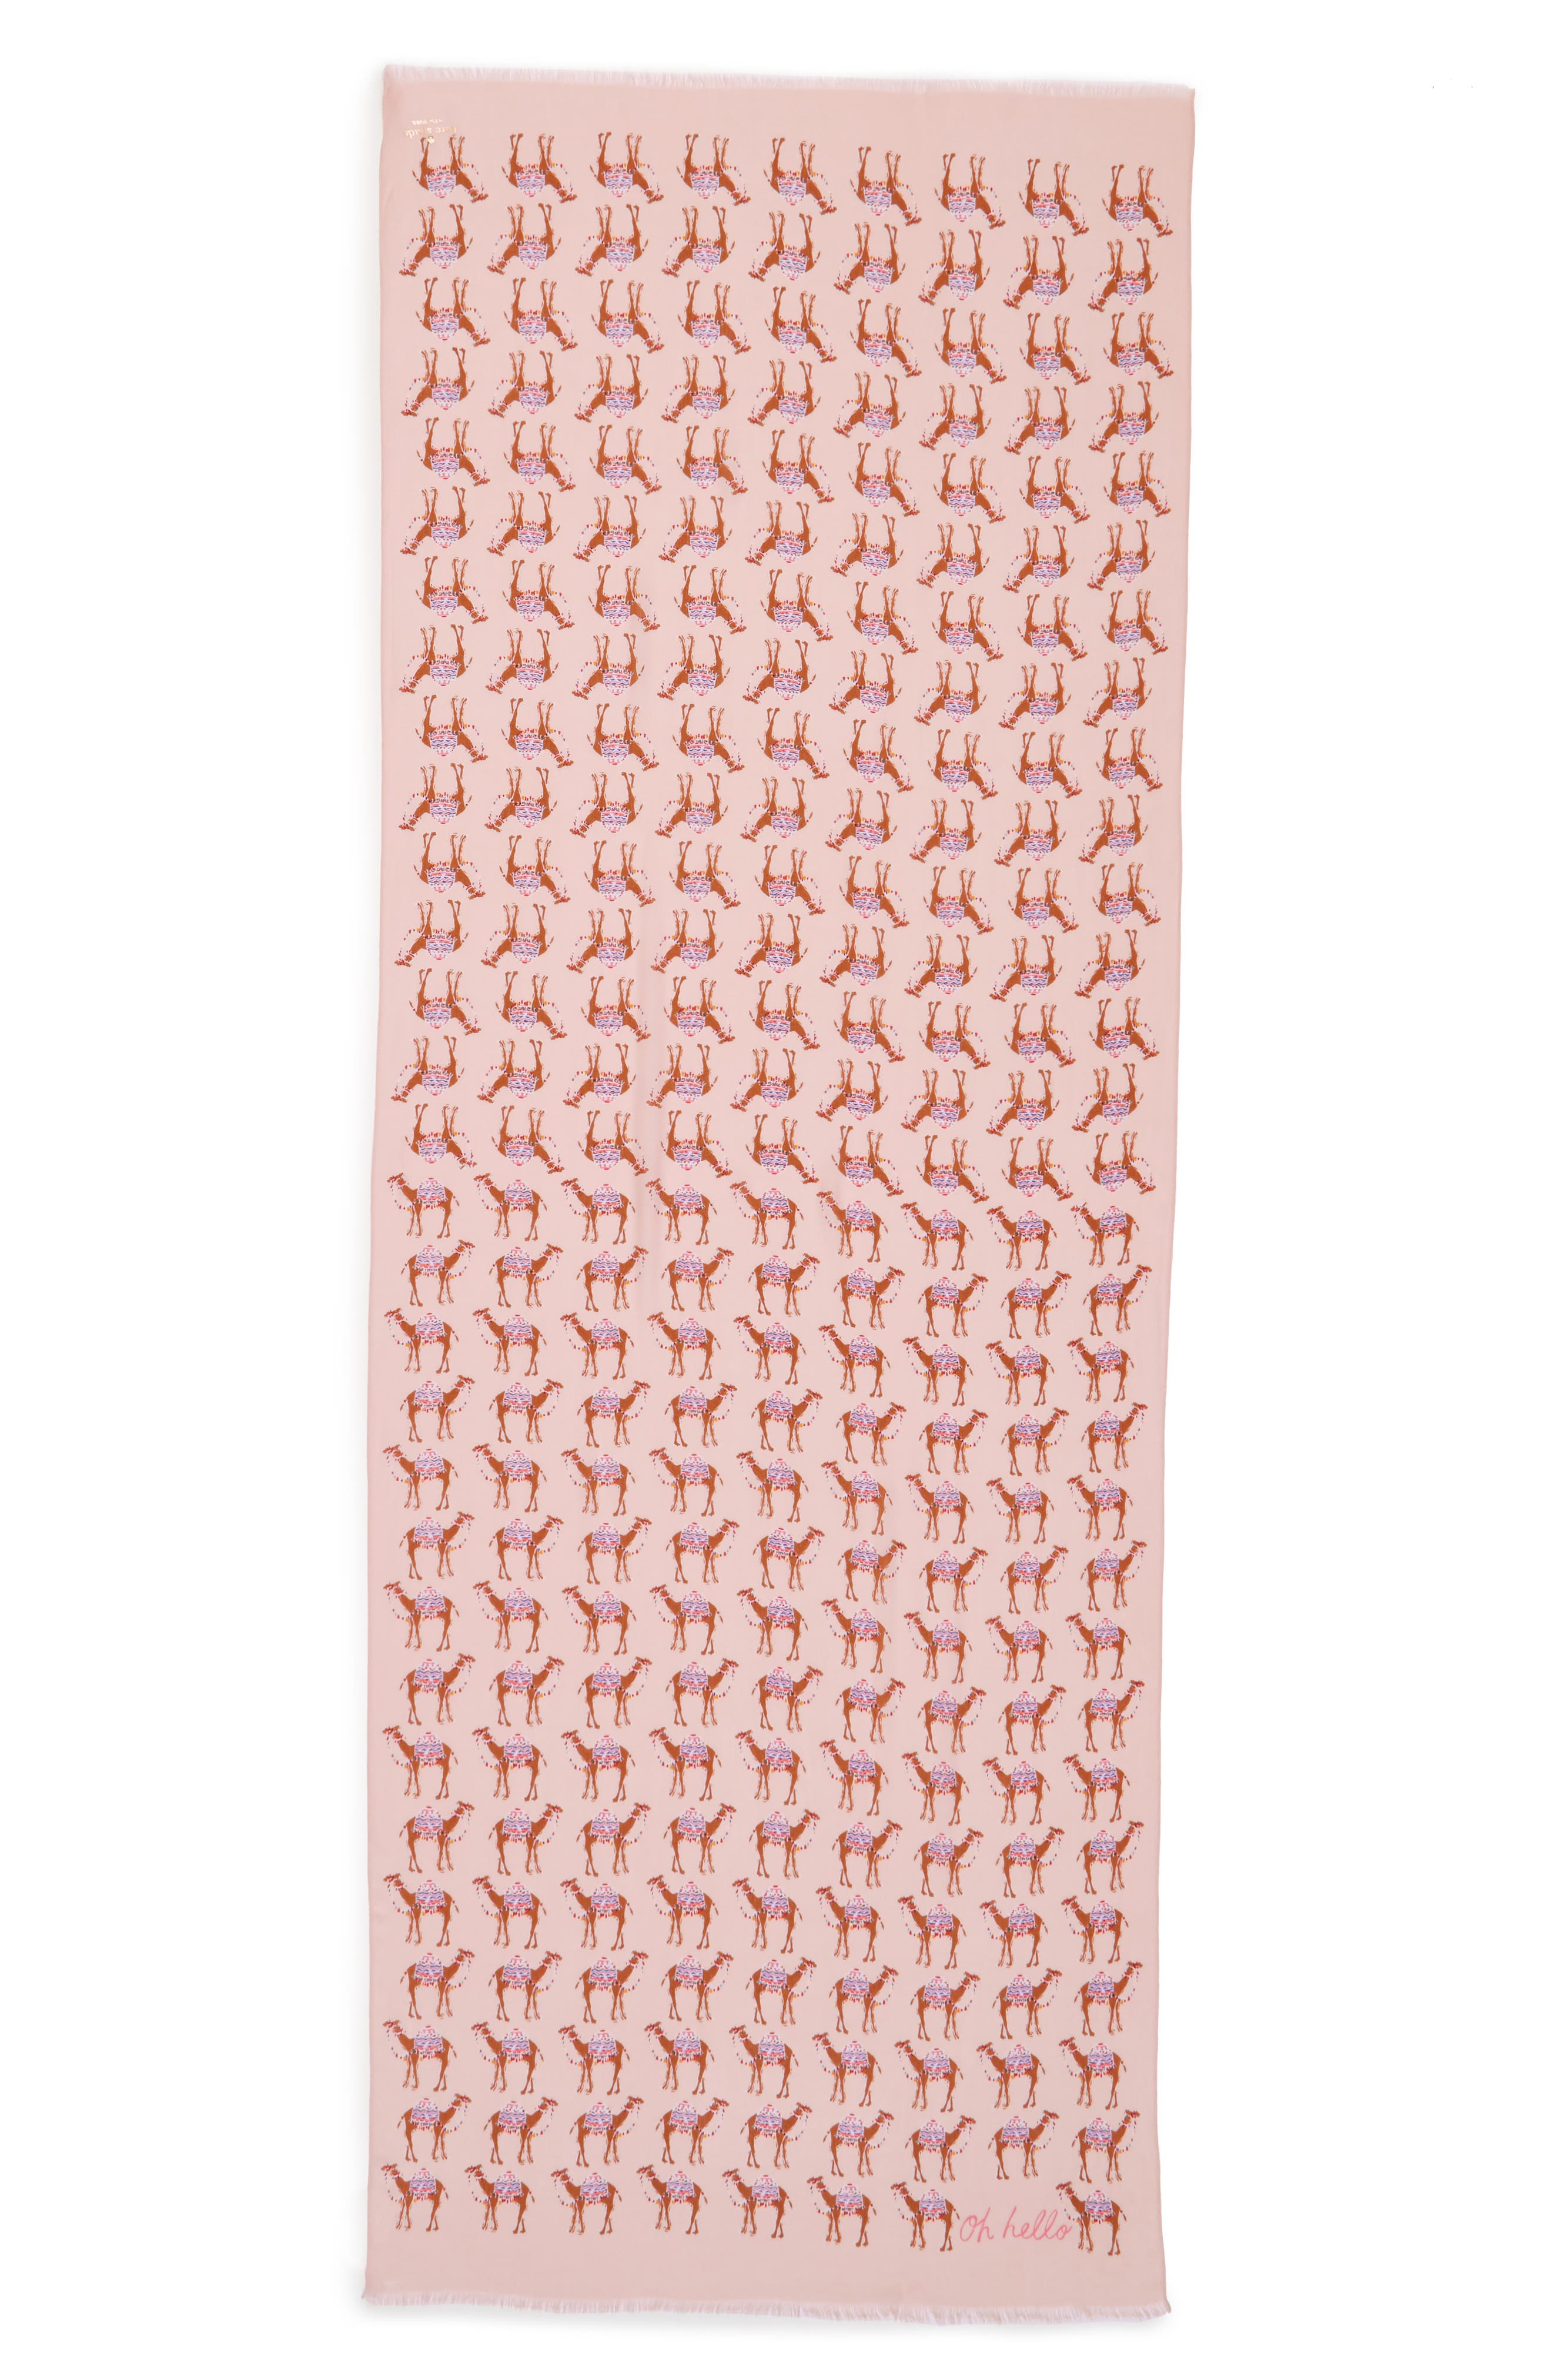 camel march scarf,                             Alternate thumbnail 2, color,                             666